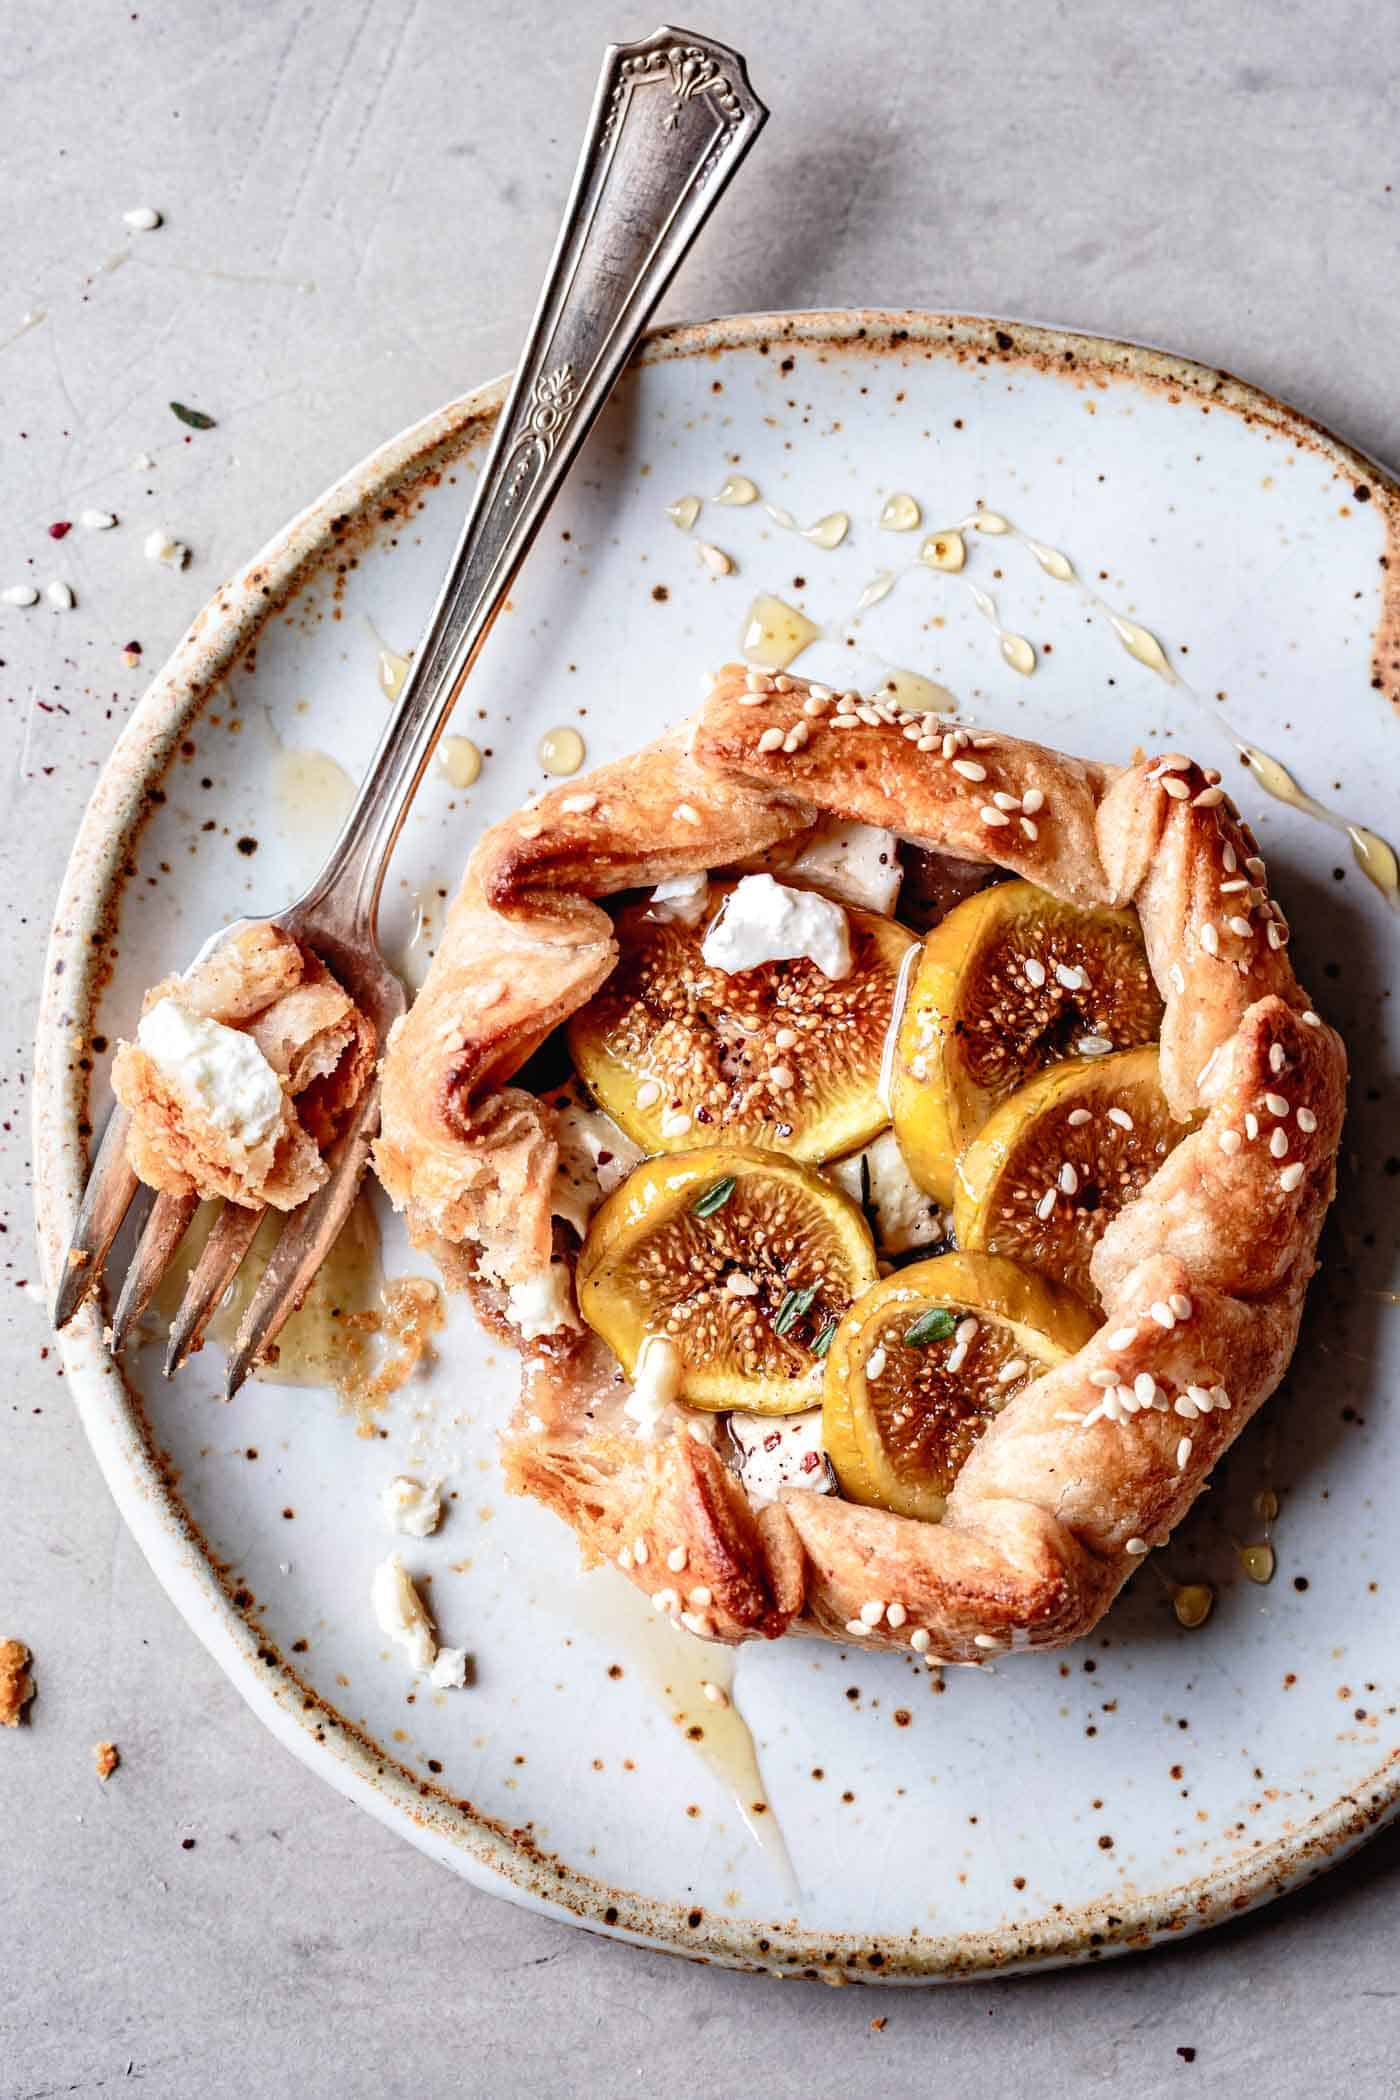 fig galette on a plate, drizzled with honey